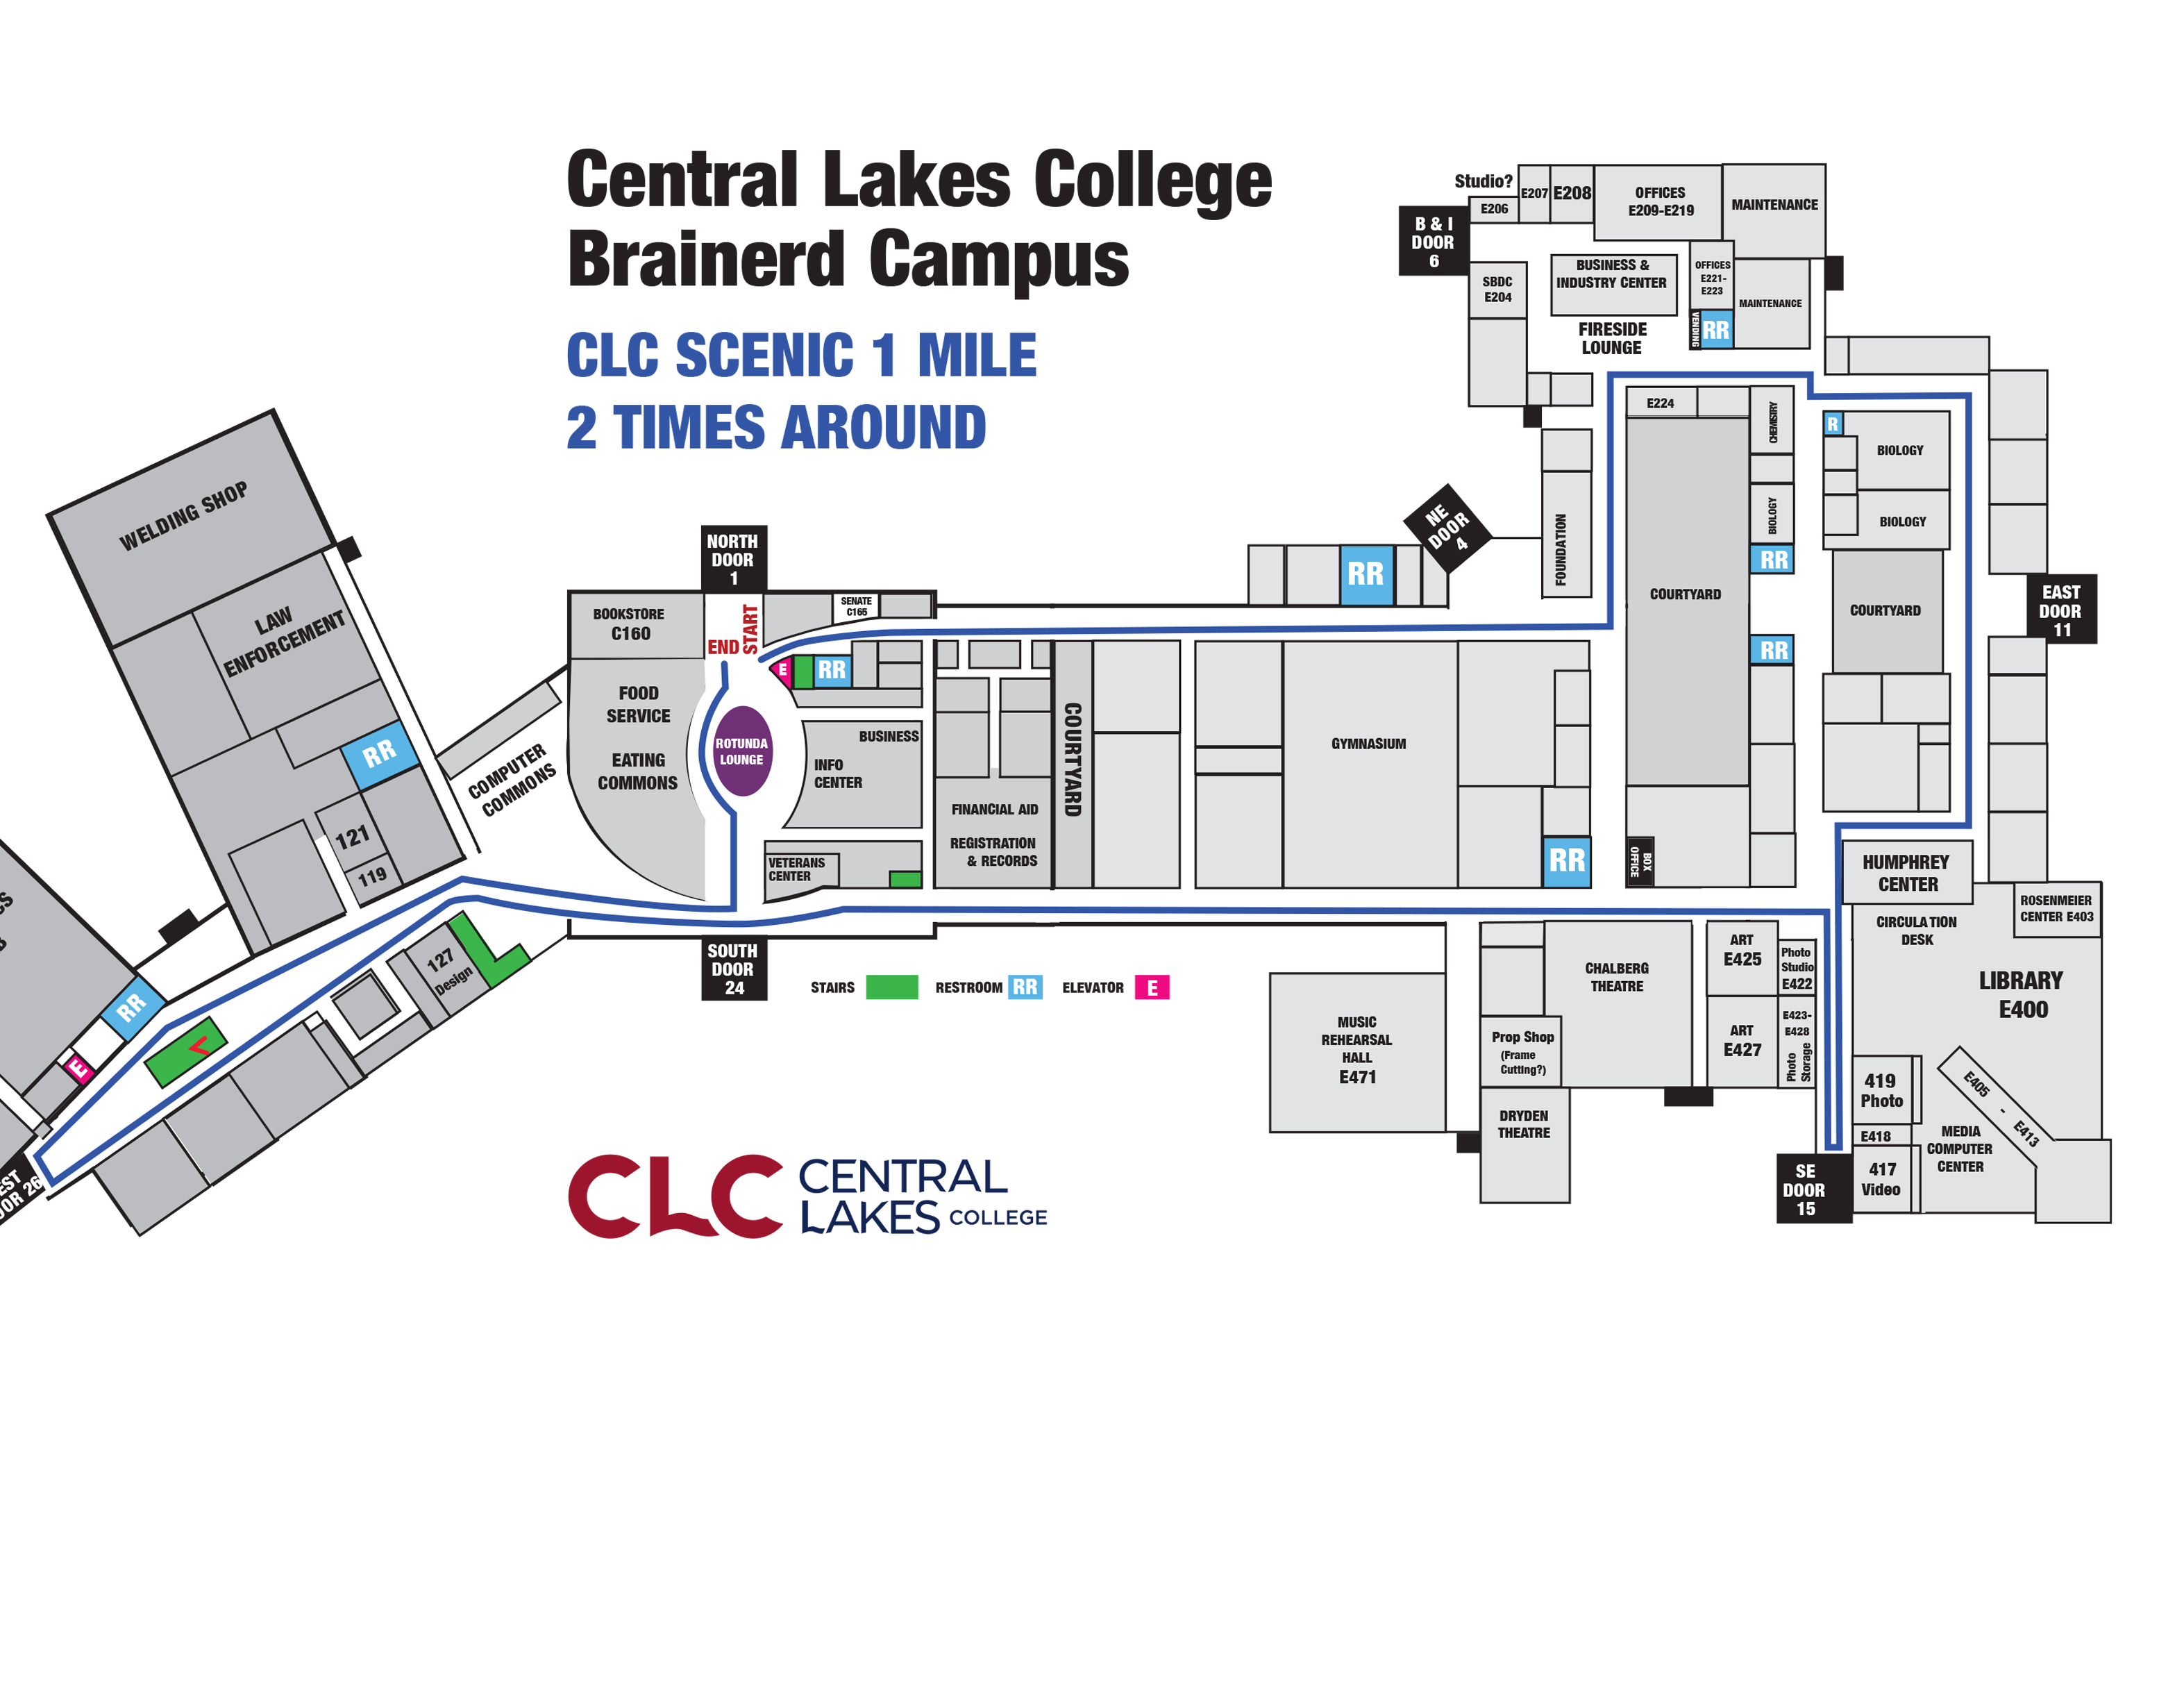 The CLC Mile – Central Lakes College